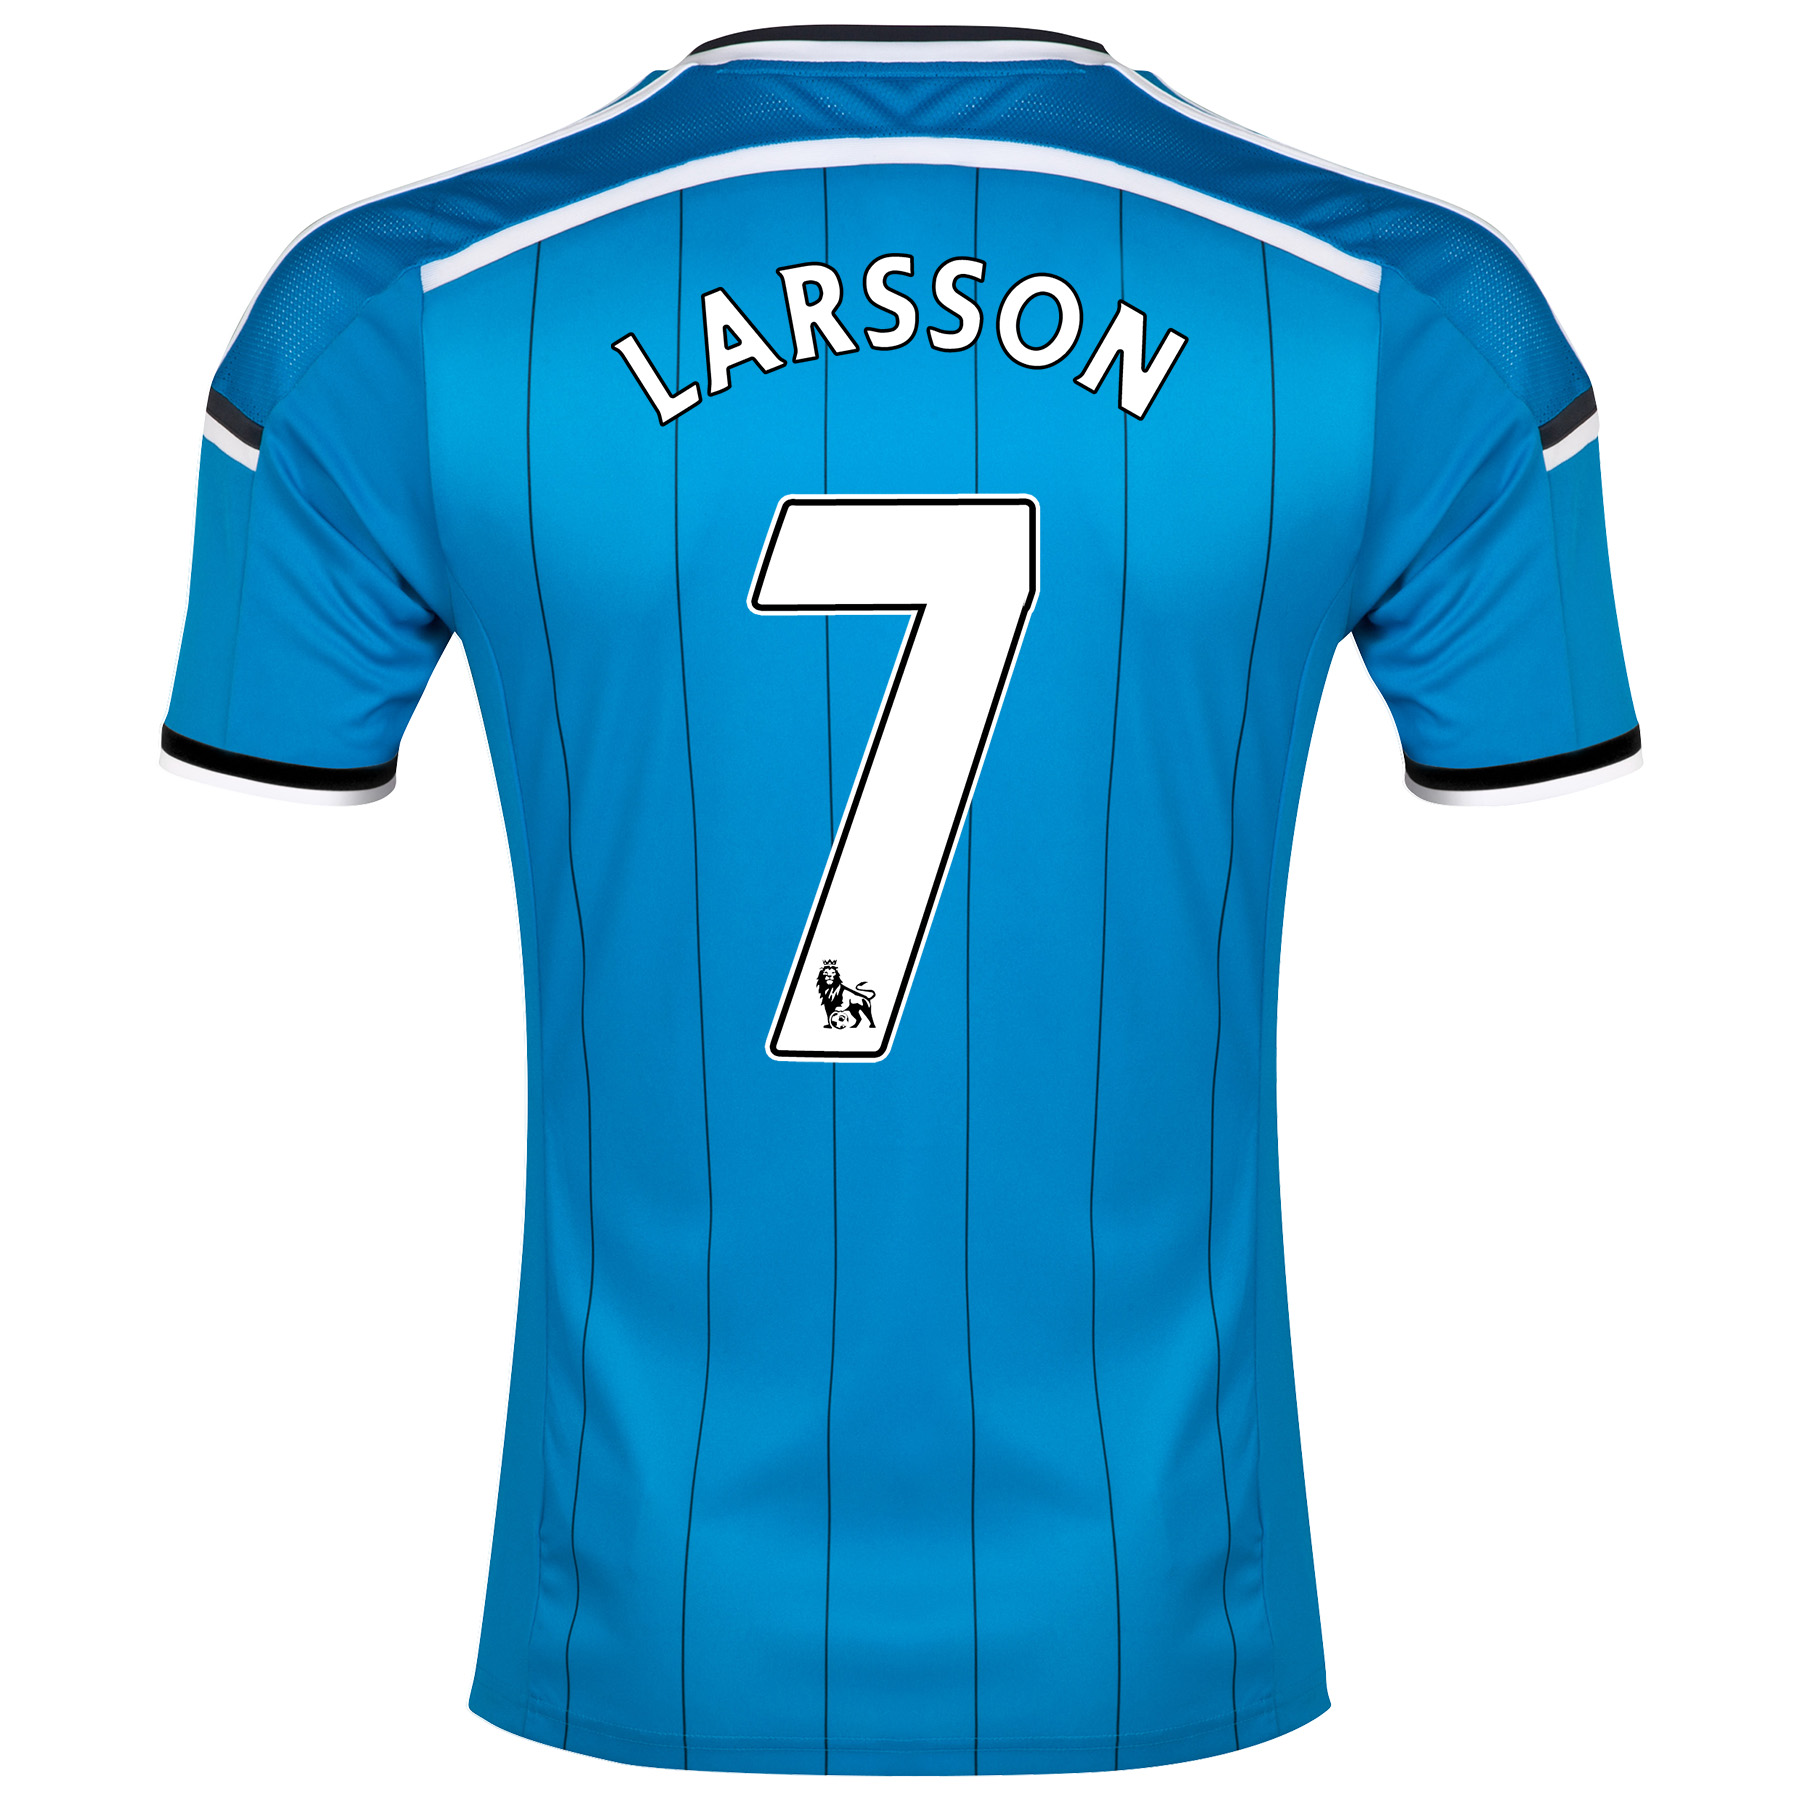 Sunderland Away Shirt 2014/15 Lt Blue with Larsson 7 printing